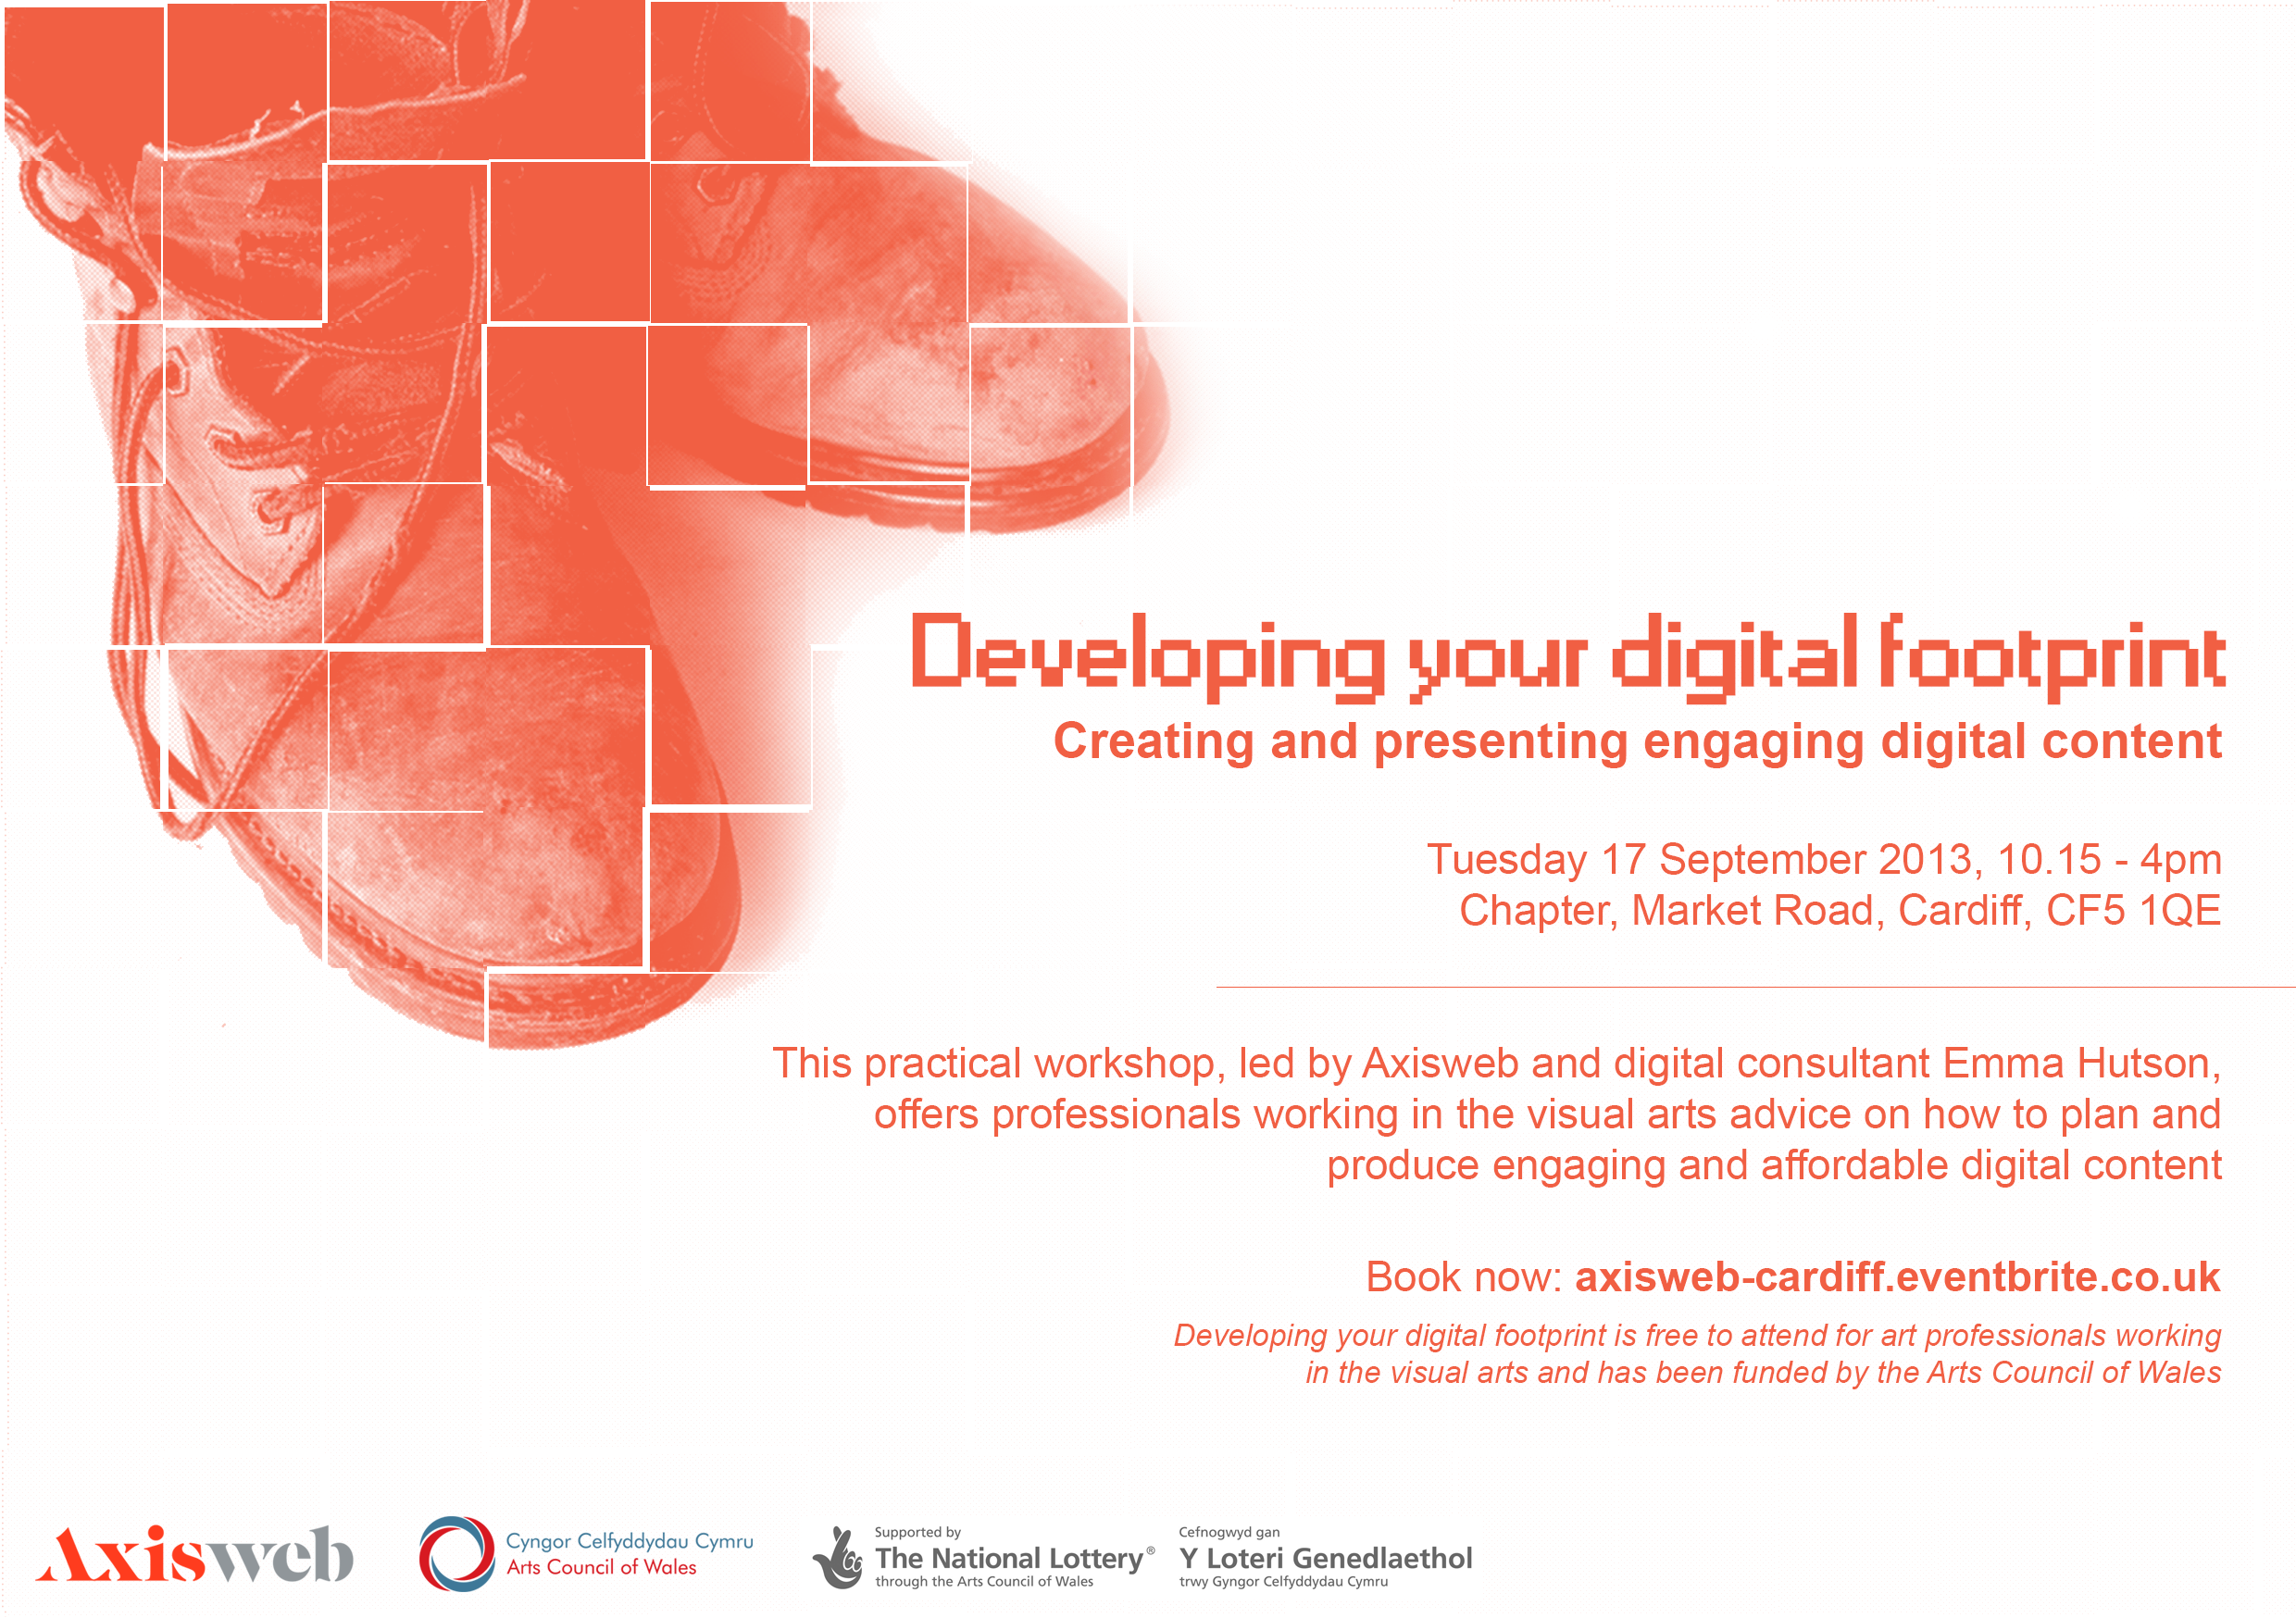 Developing your Digital Footprint: Creating and presenting engaging digital content